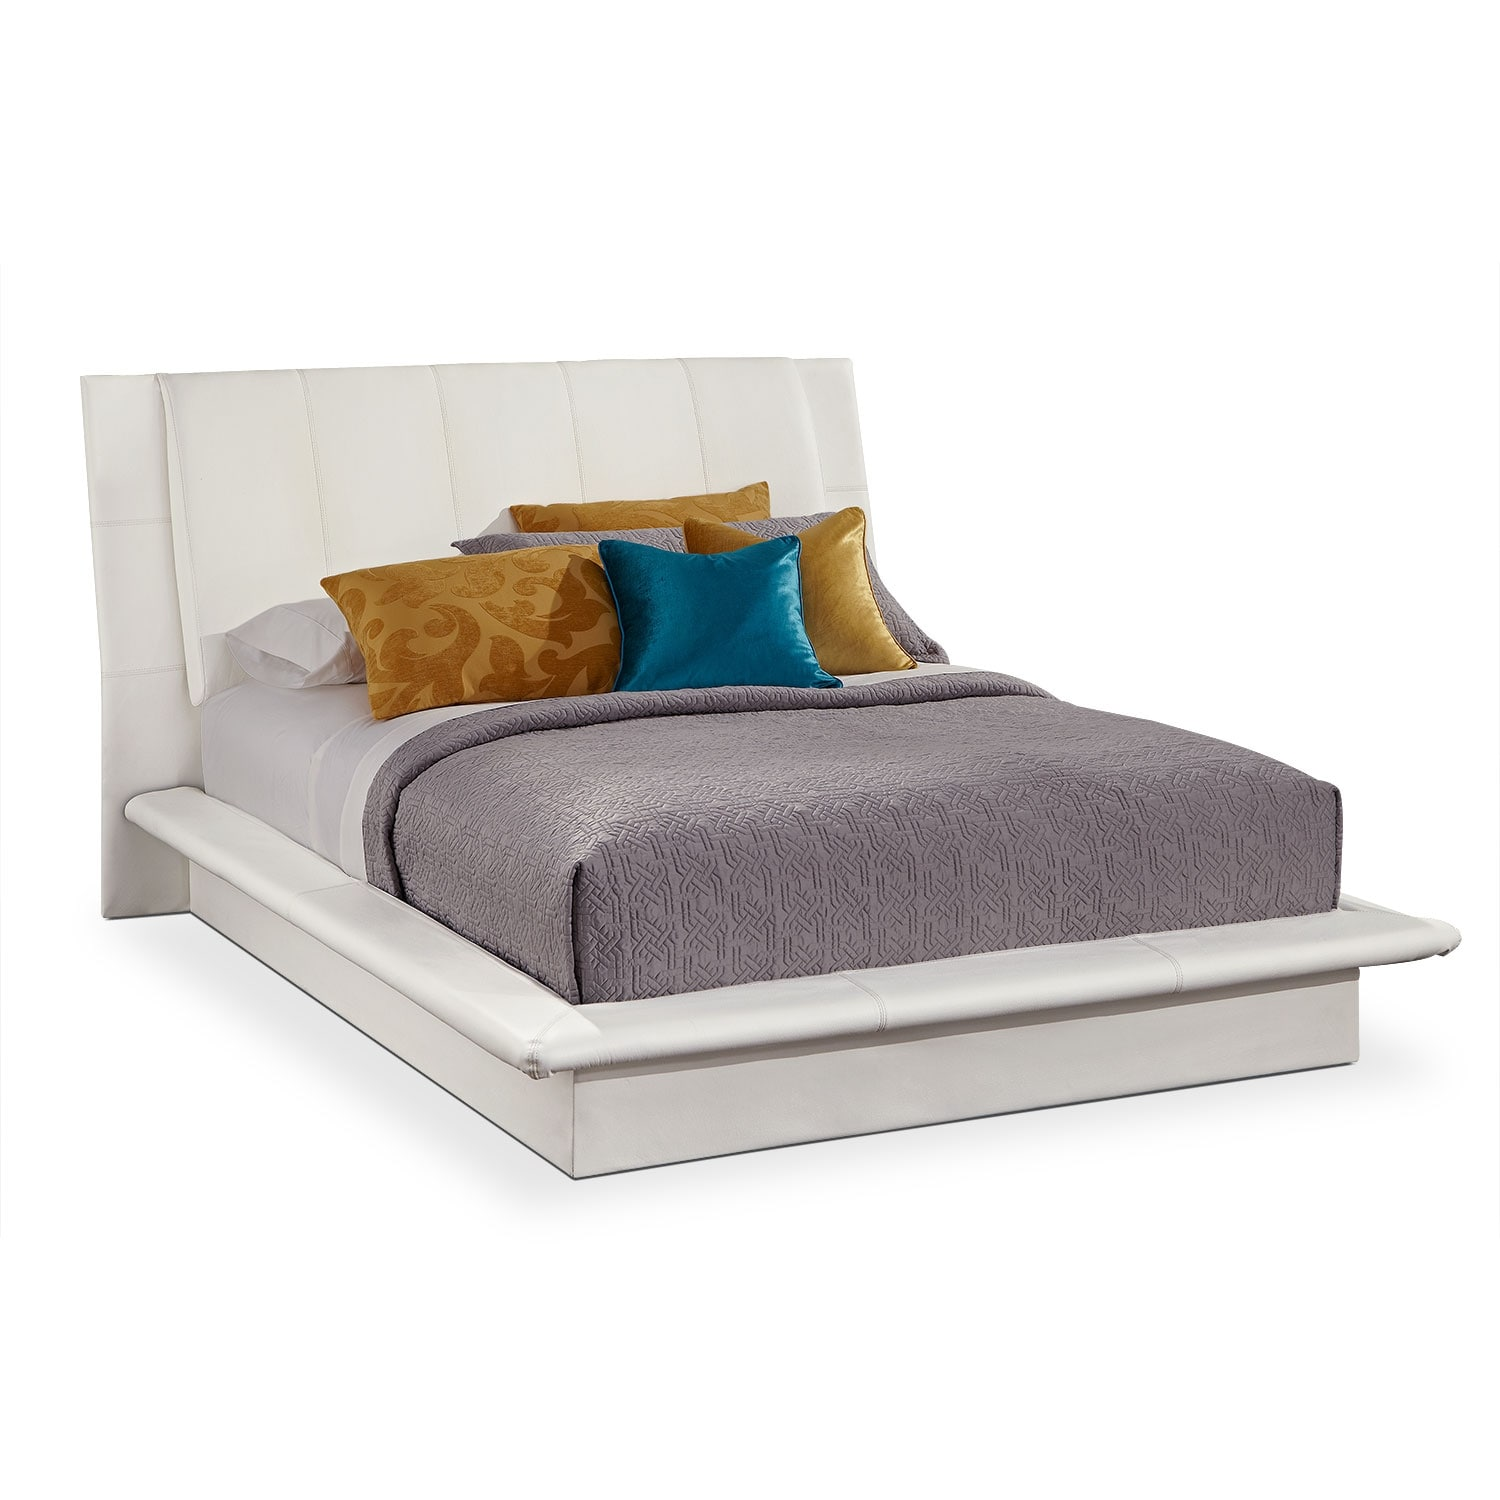 Bedroom Furniture - Dimora Queen Upholstered Bed - White